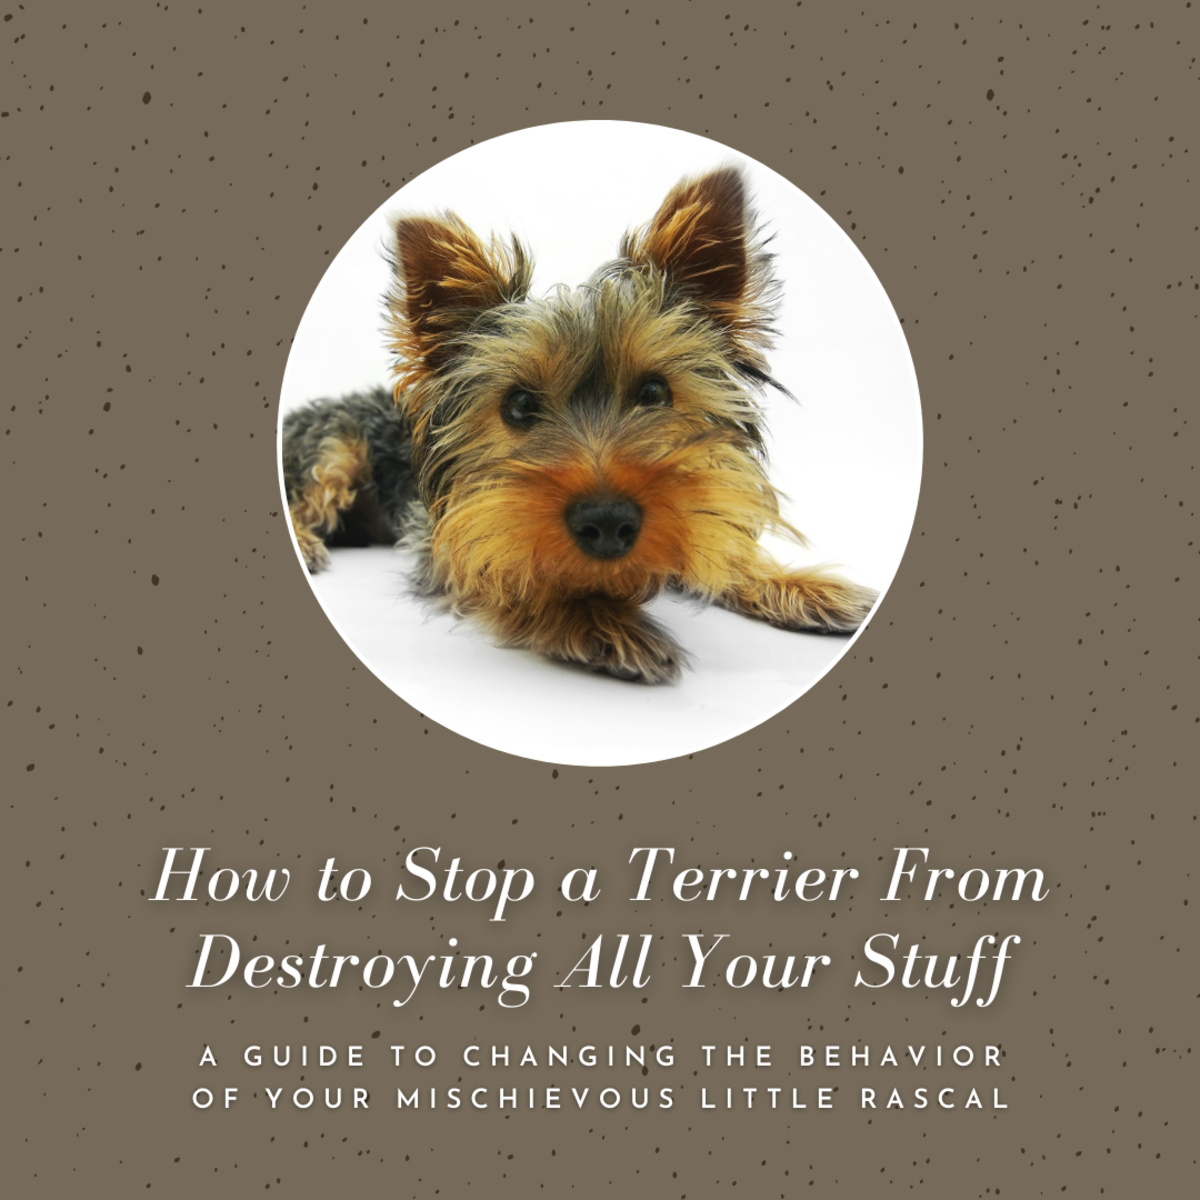 This guide will help you figure out how to get your beloved little terrier to stop ripping up all your possessions.